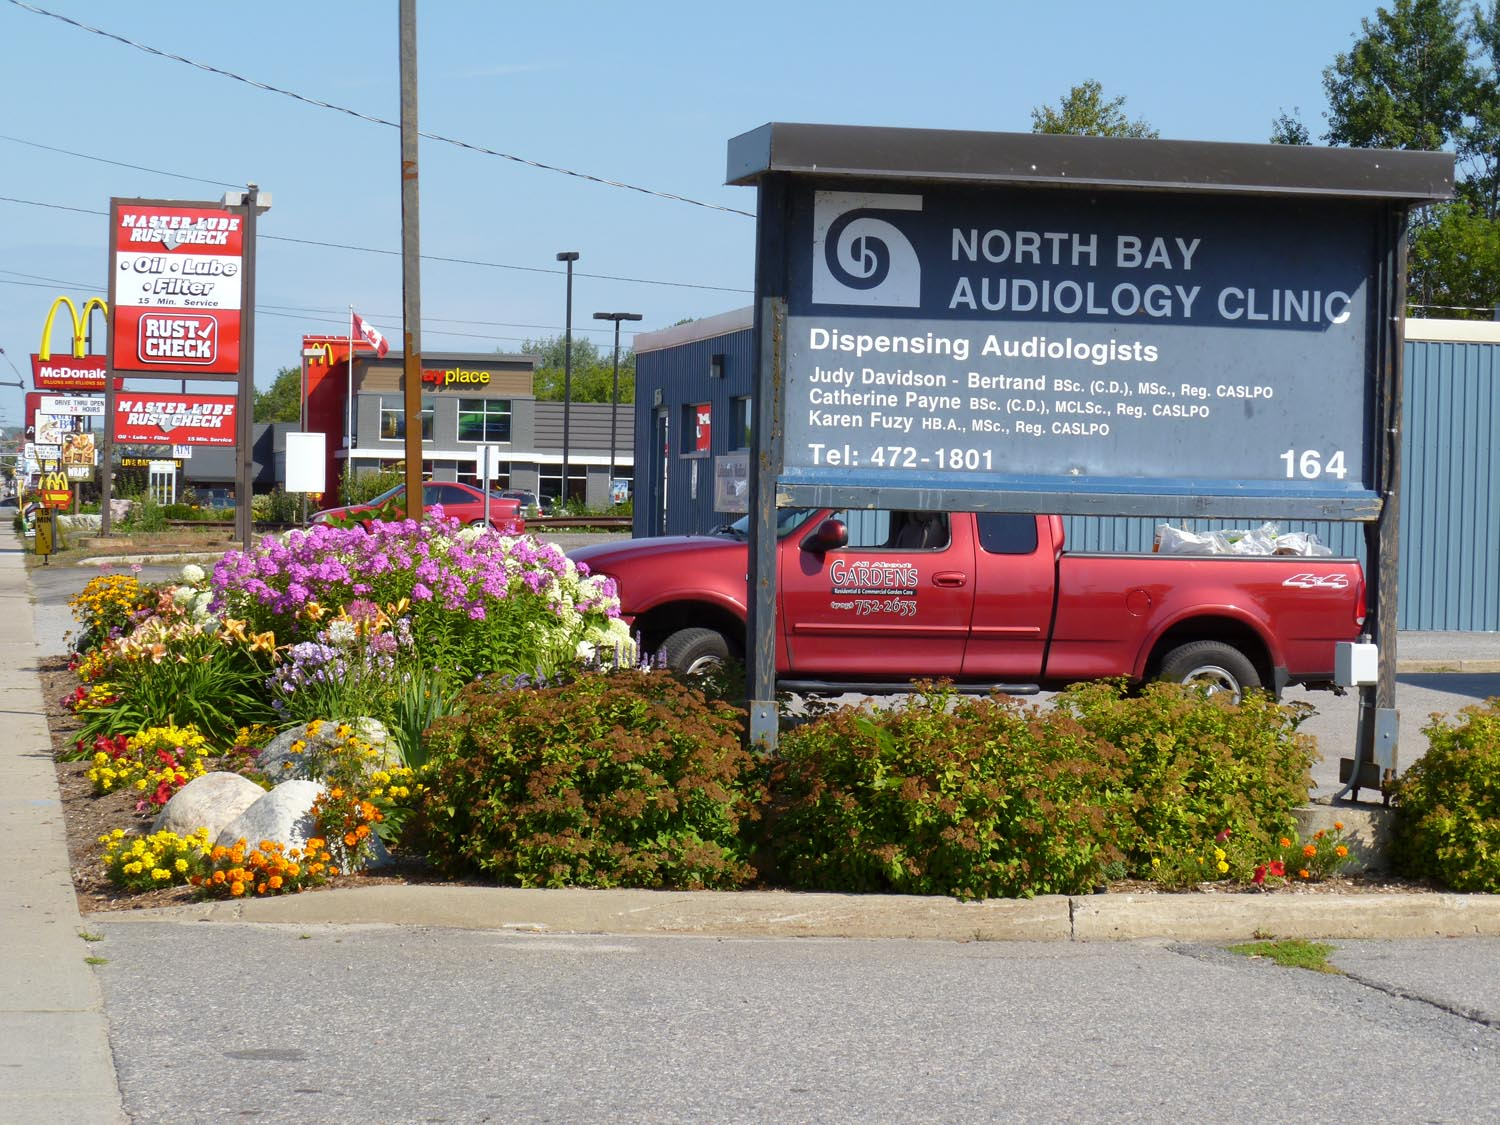 North Bay Audiology